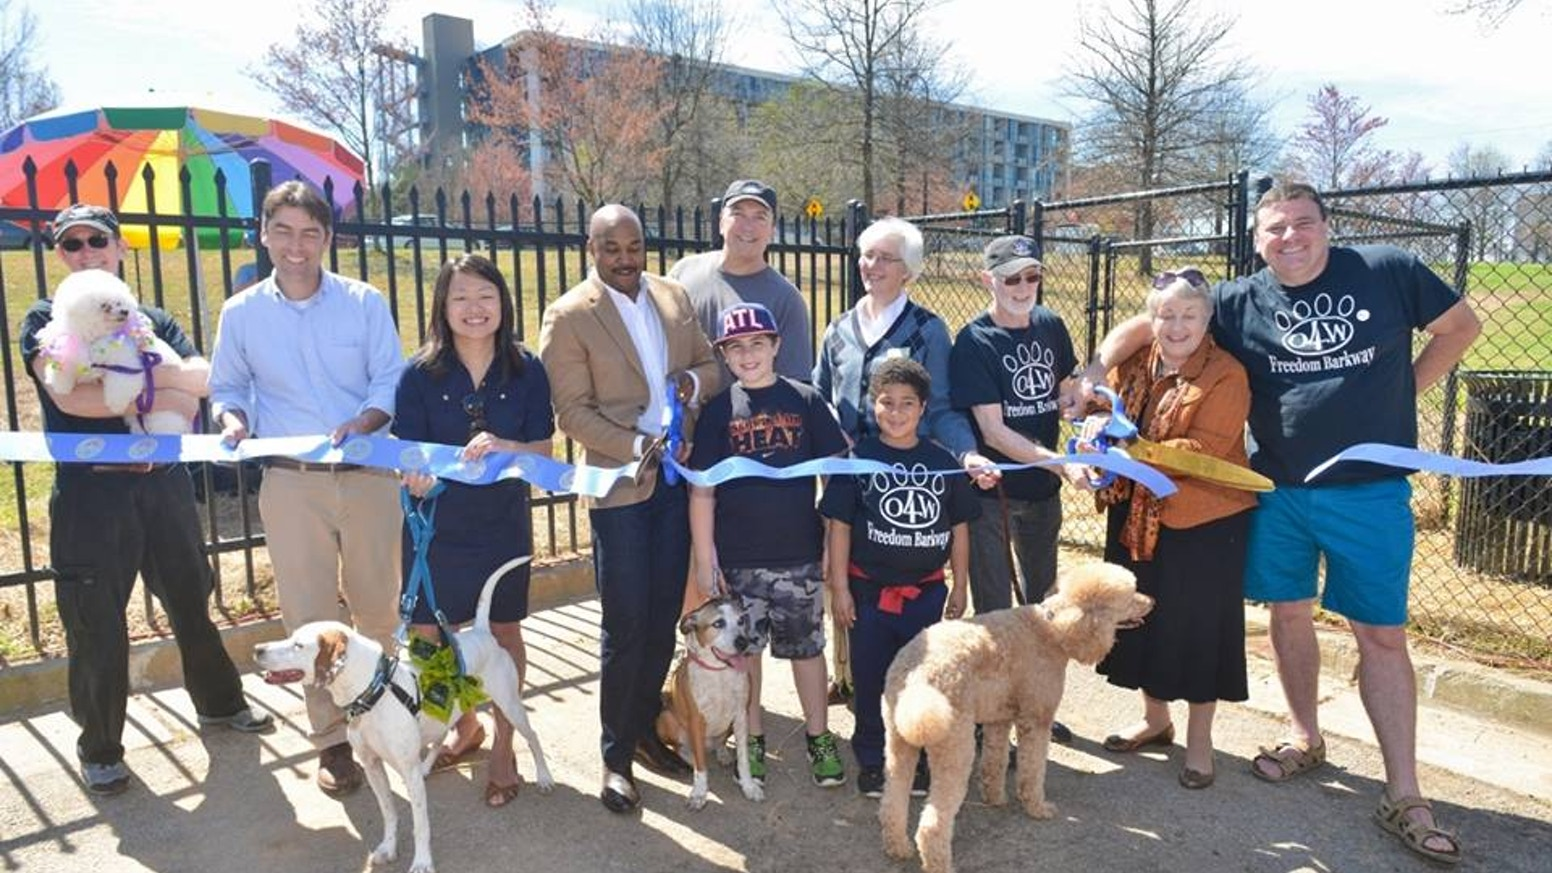 Ribbon Cutting Ceremony at Grand Opening of Freedom Barkway on Saturday, March 21st.